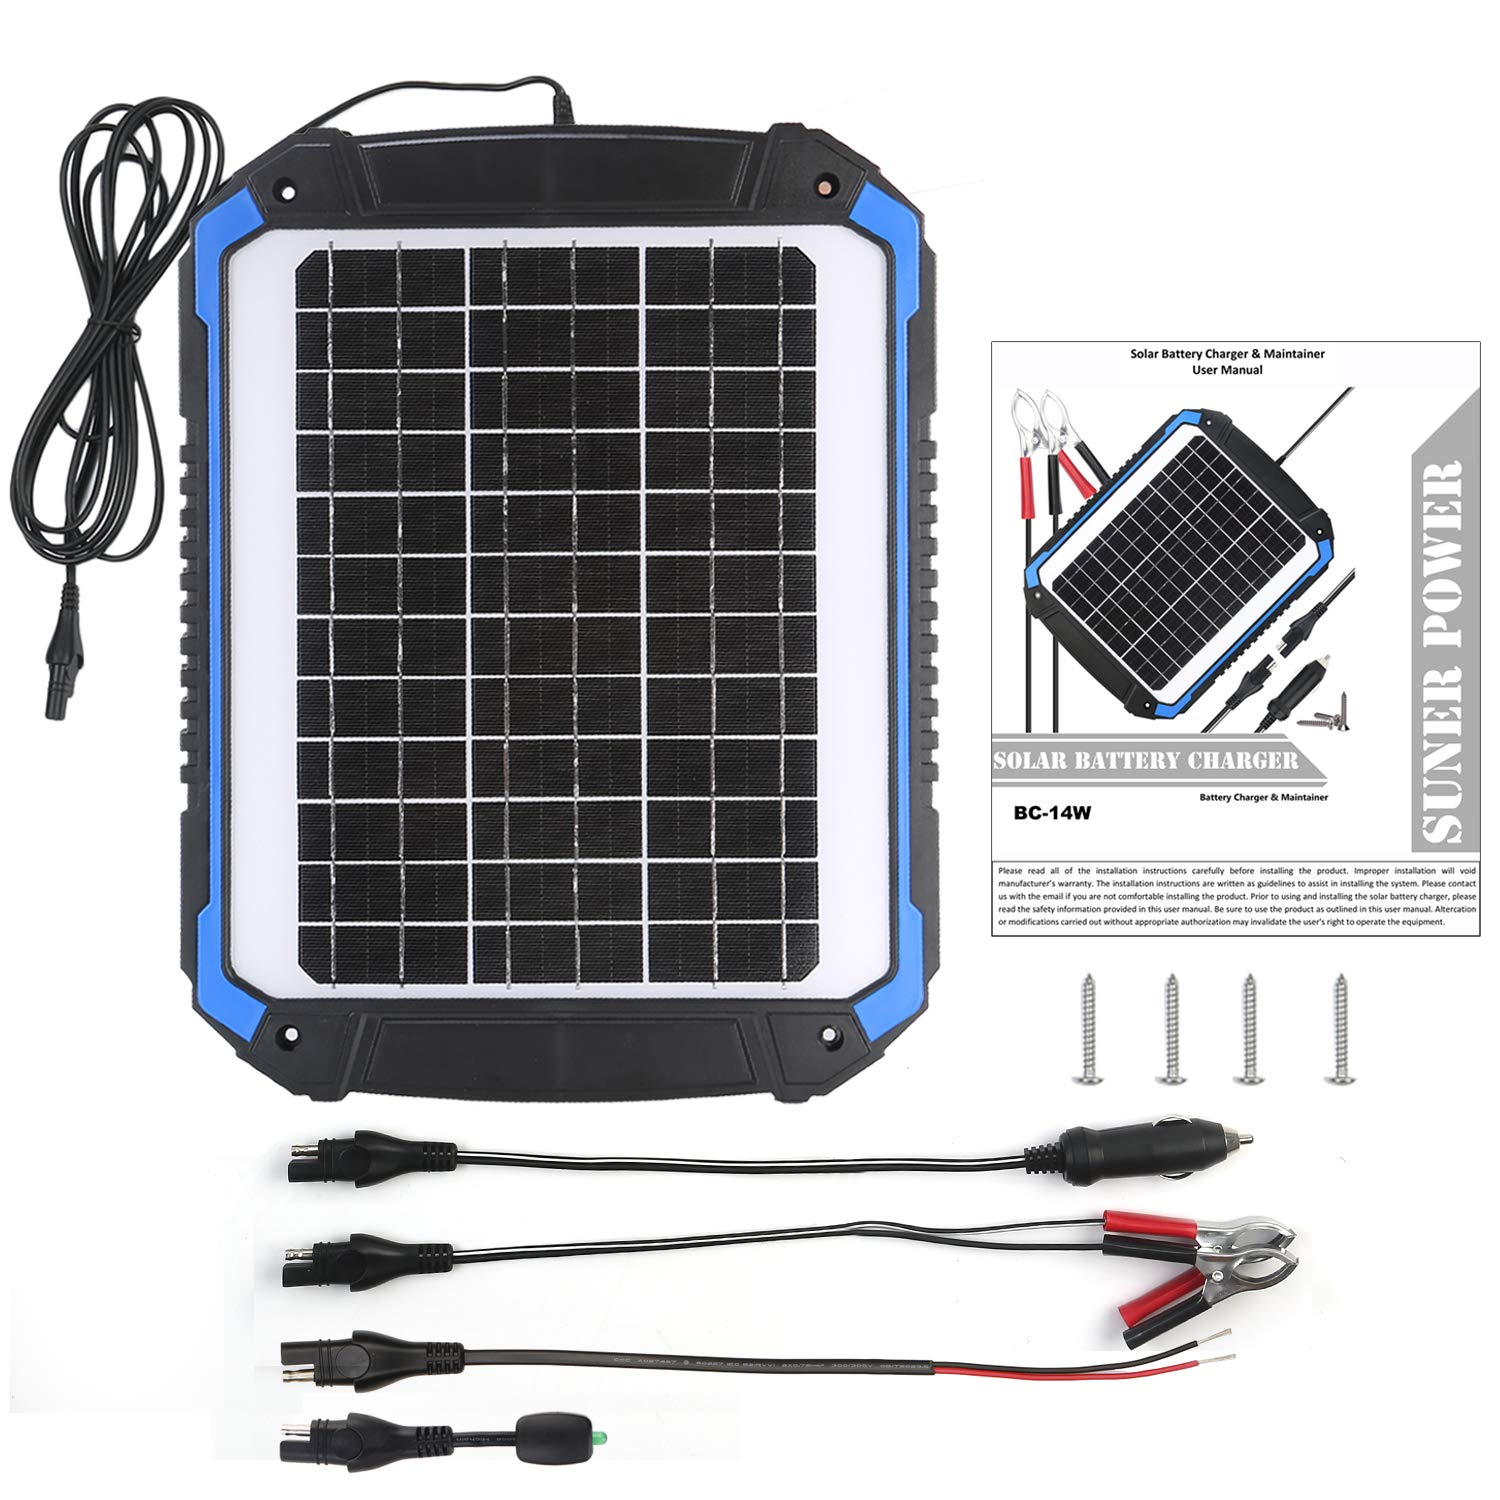 SUNER POWER 12V Solar Car Battery Charger & Maintainer - Portable 14W Solar Panel Trickle Charging Kit for Automotive, Motorcycle, Boat, Marine, RV, Trailer, Powersports, Snowmobile, etc. by SUNER POWER (Image #3)